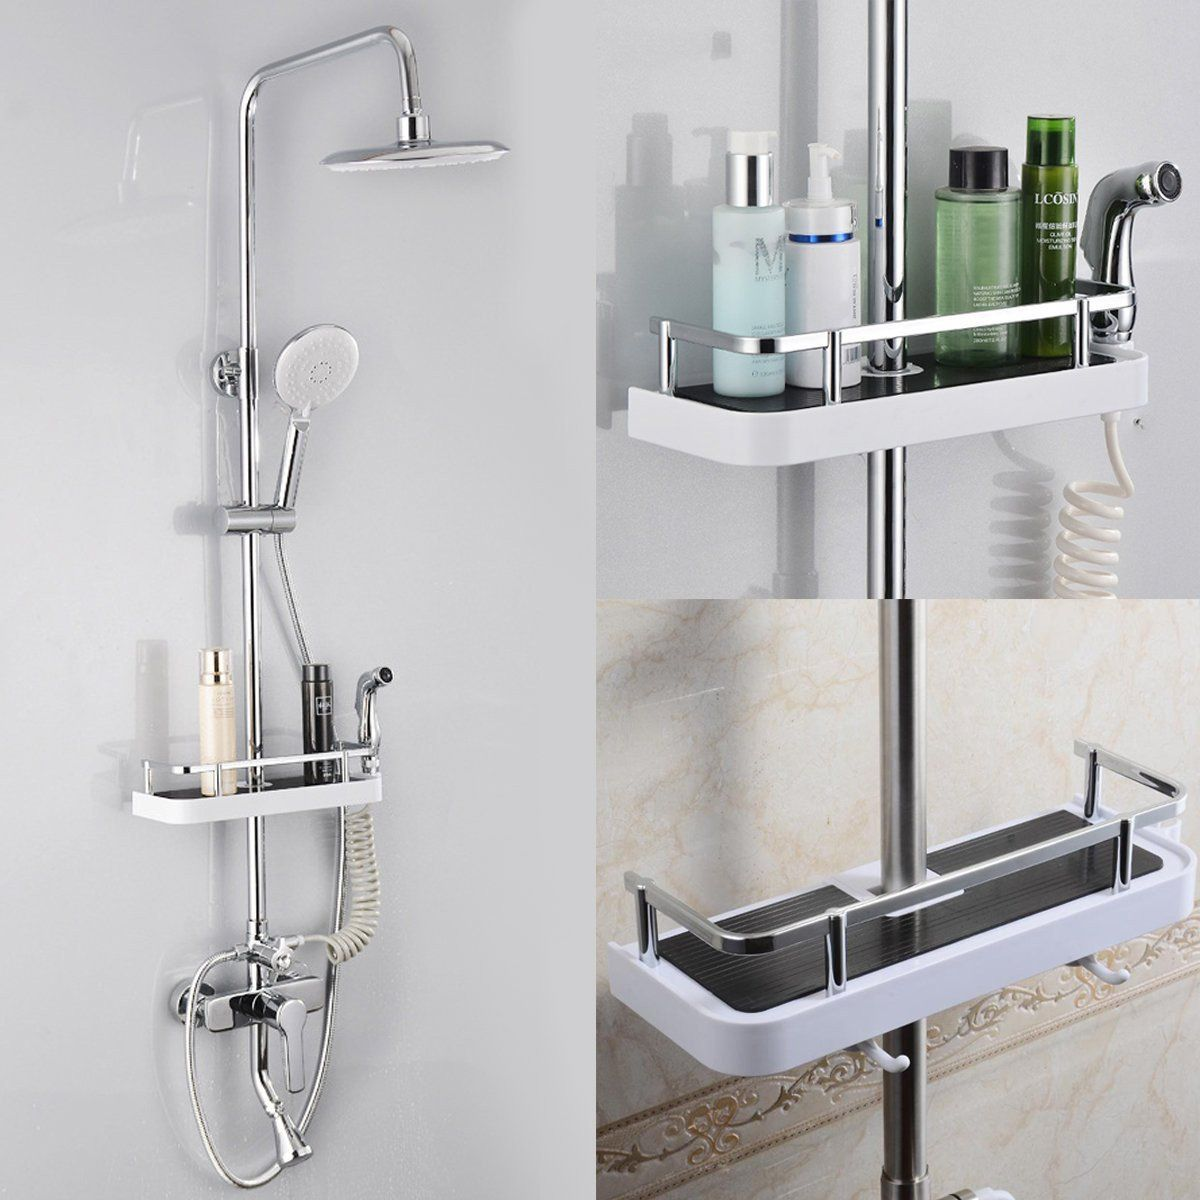 Bathroom Pole Shelf Shower Bath Storage Caddy Rack Organiser Hollow Tray Holder